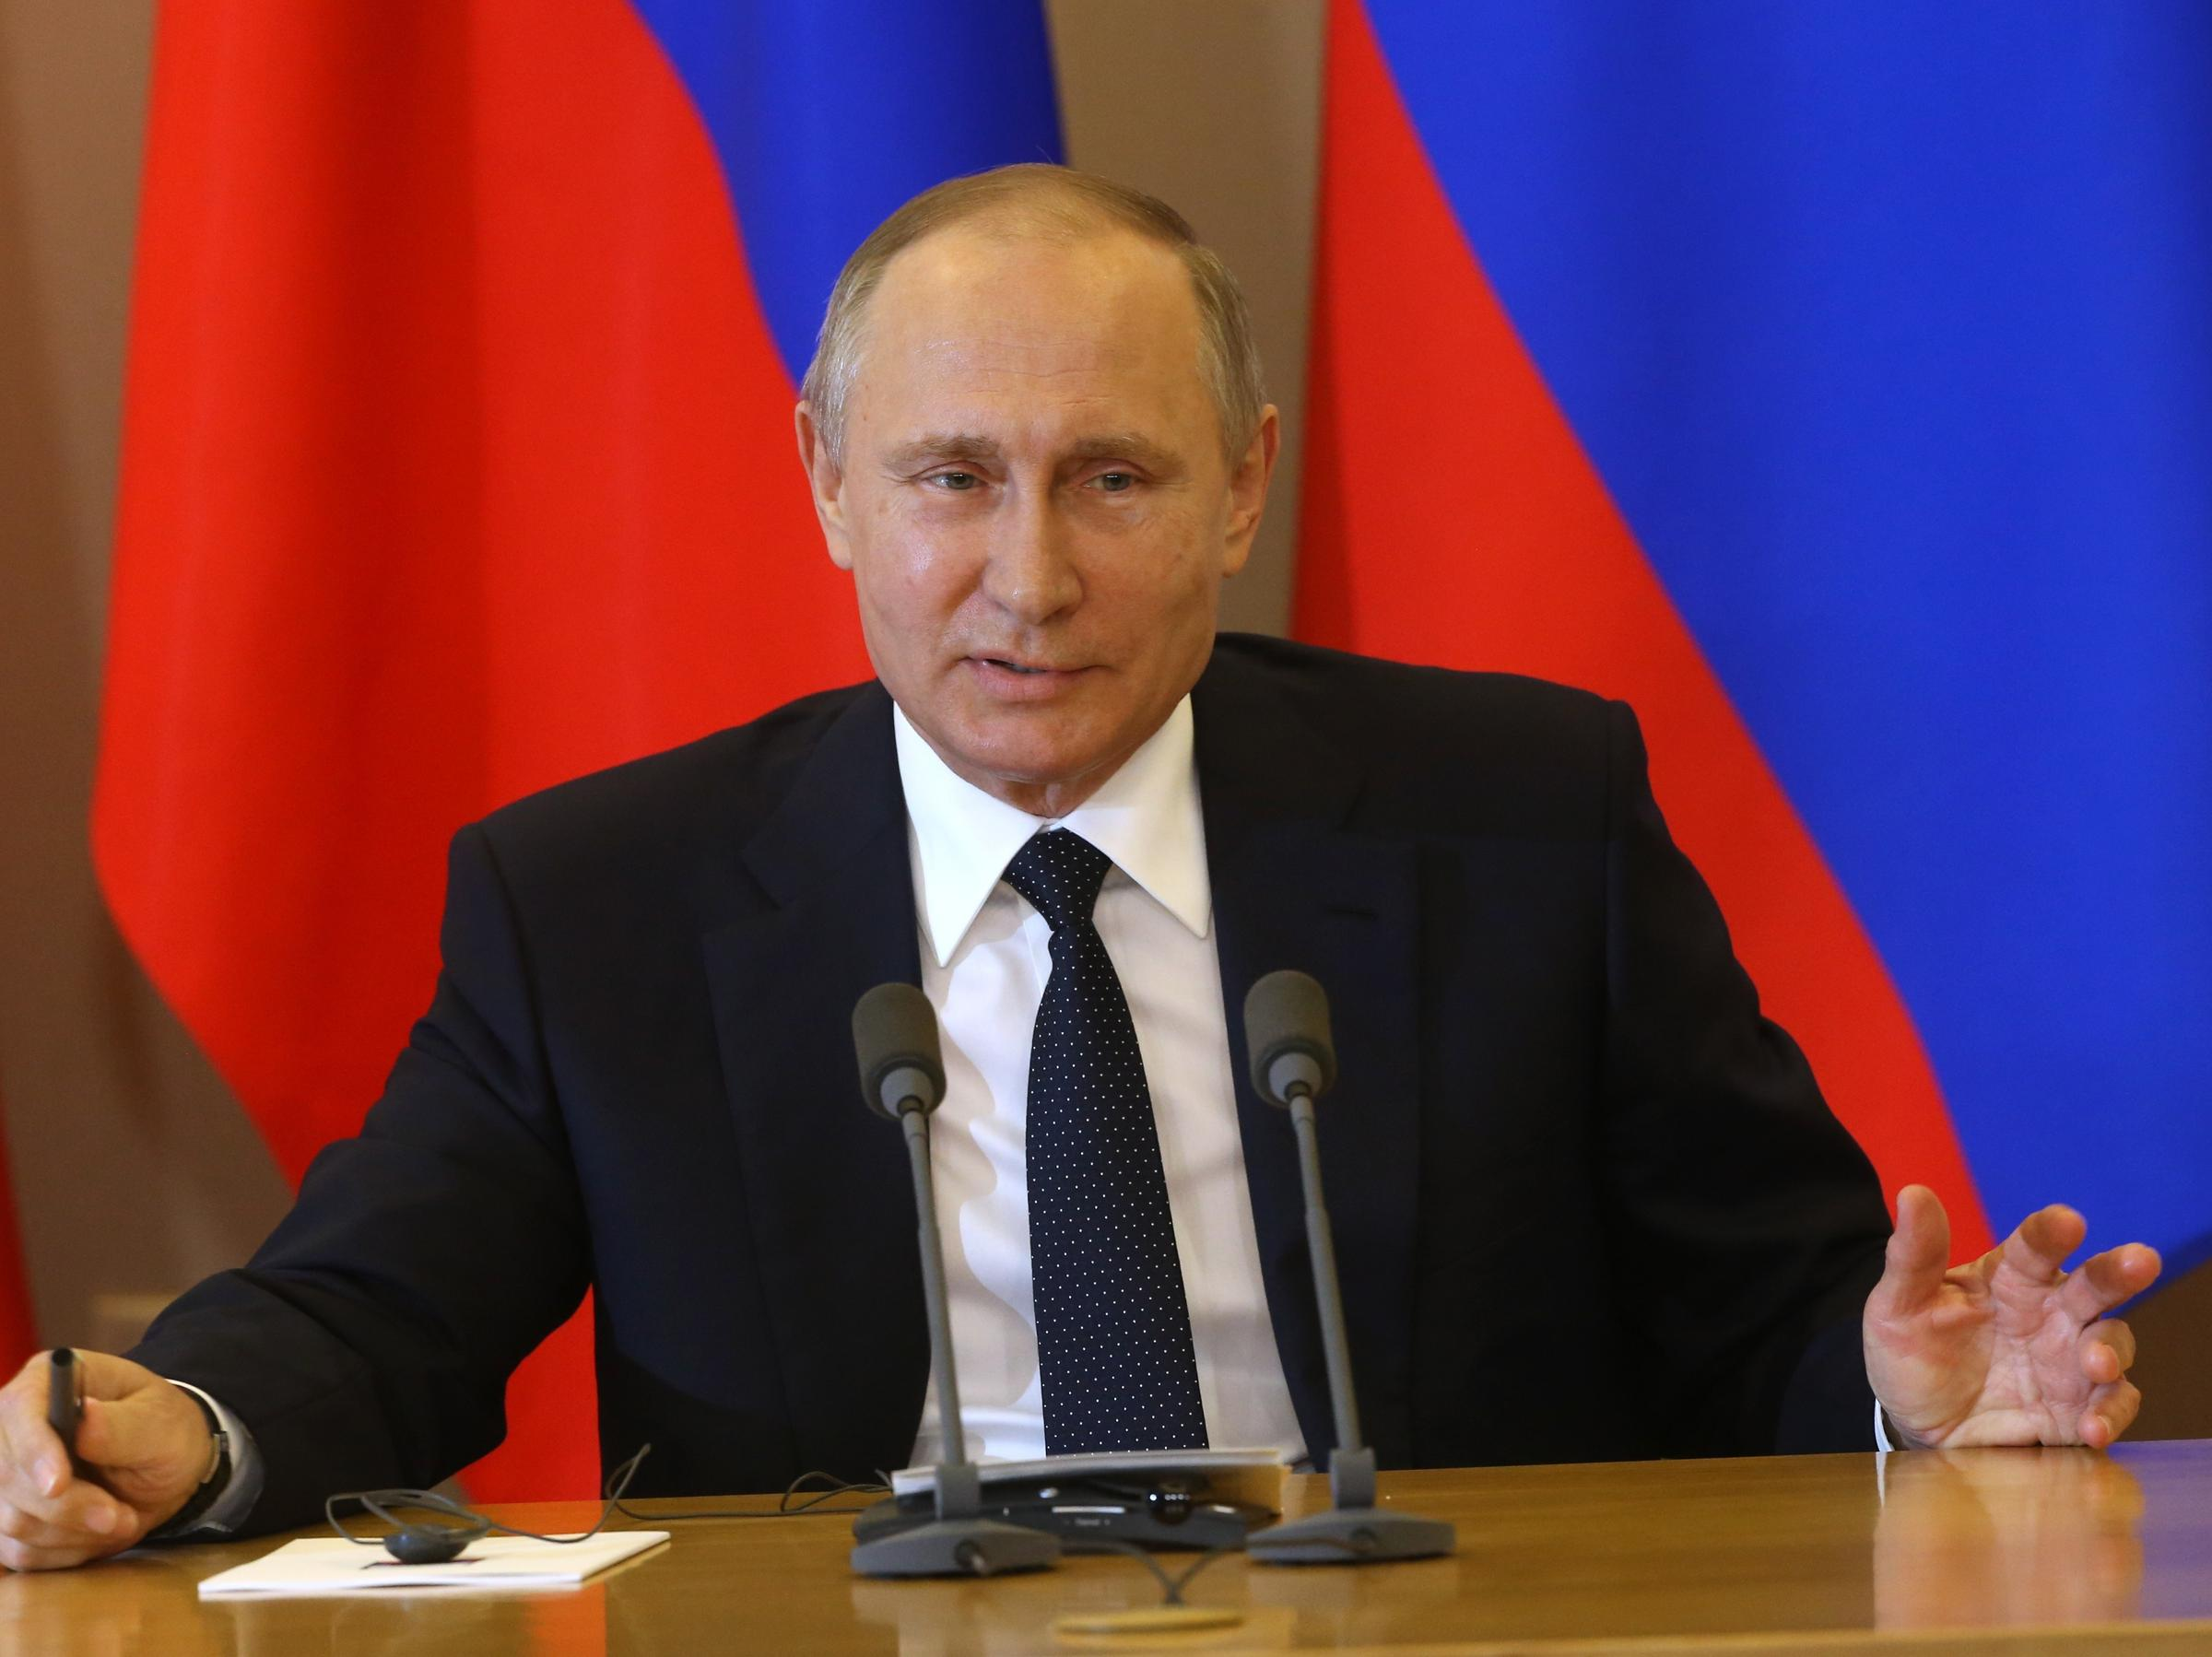 Putin: US pols may have 'political schizophrenia,' or be 'stupid' or 'dangerous'